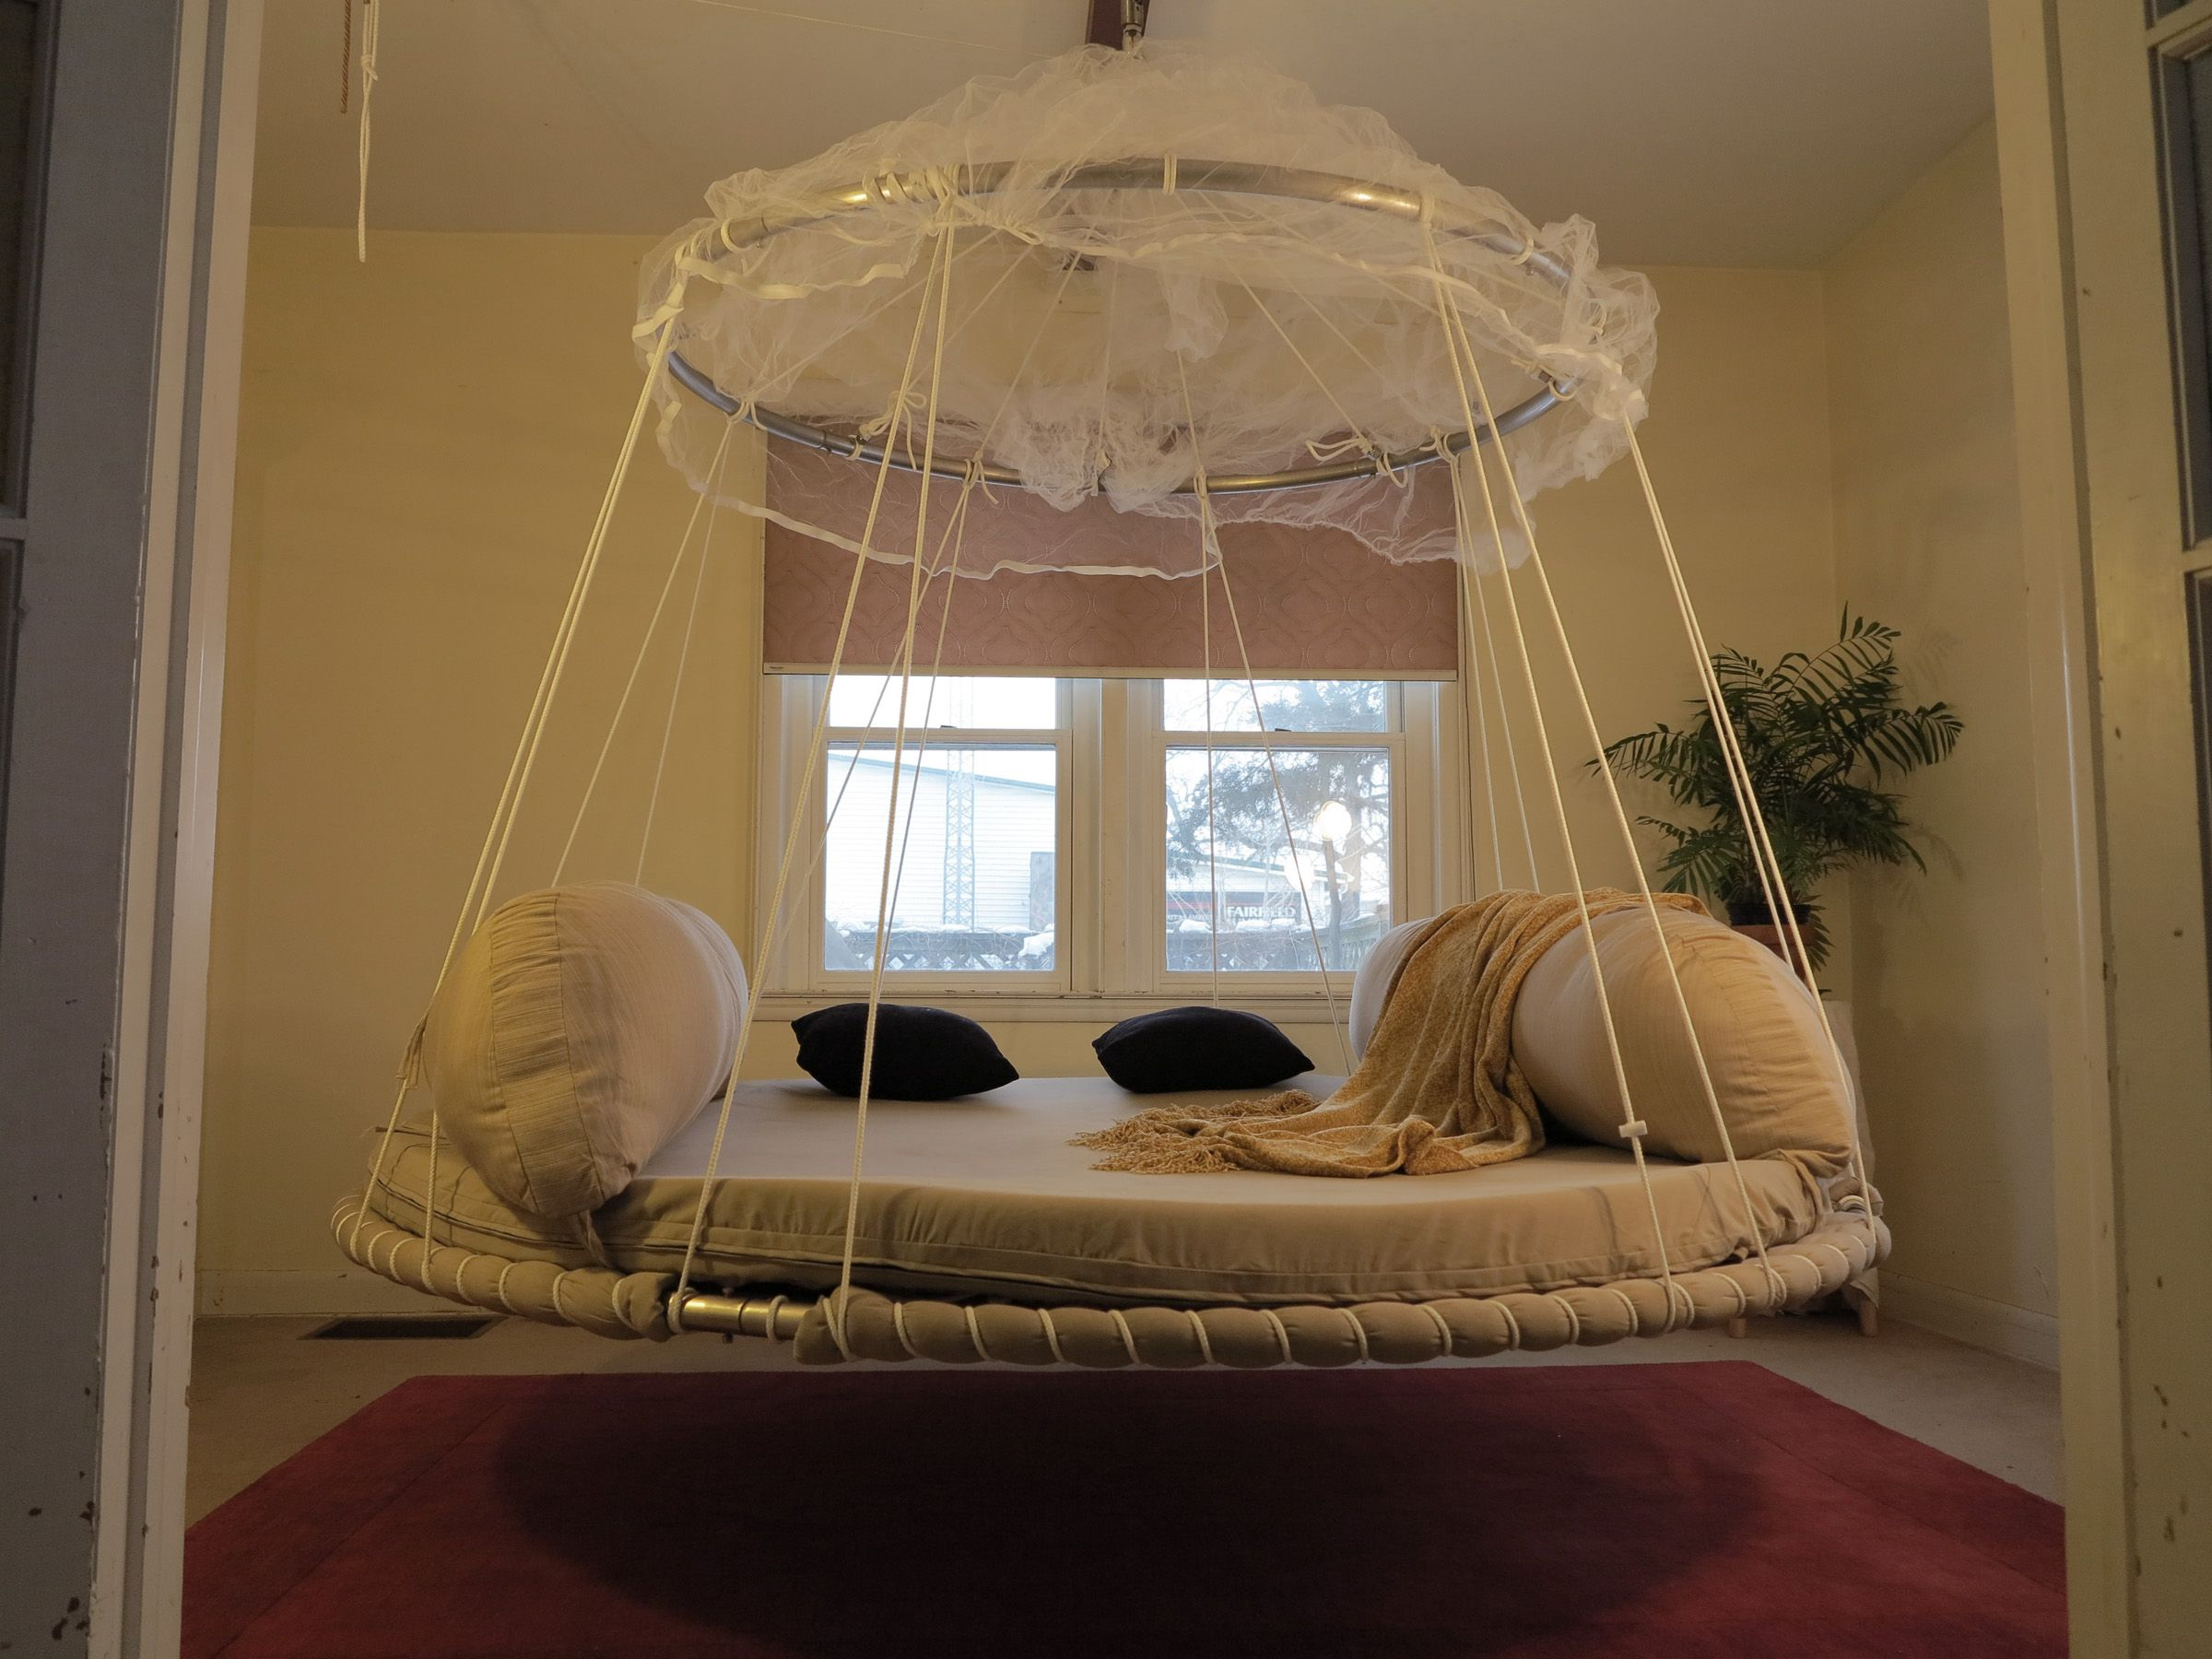 baby make wicker round bedroom out bed indoor kids swing hanging a trampoline chair hammock of